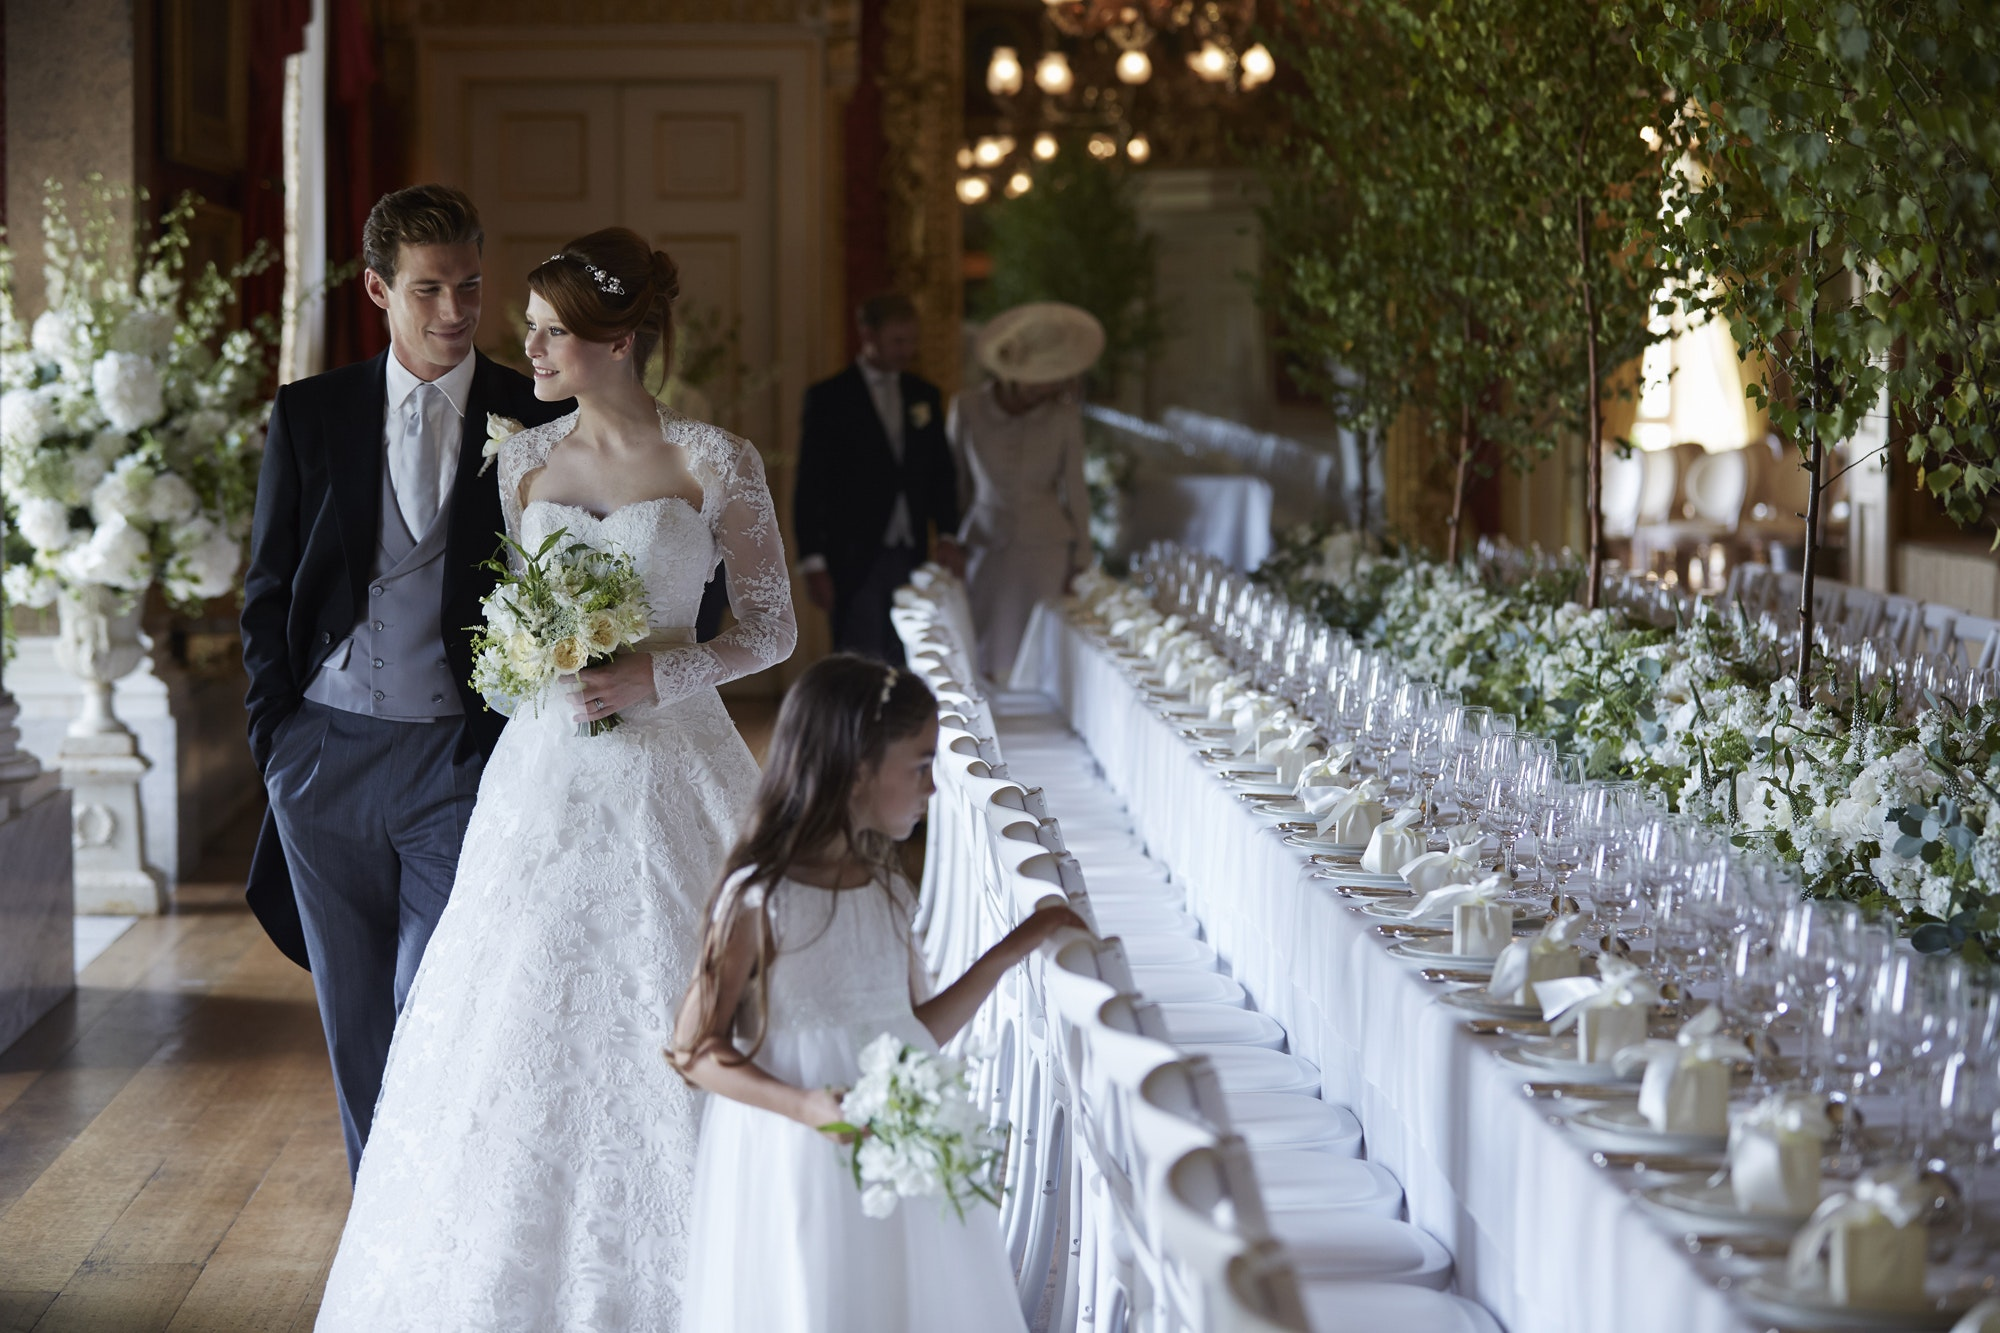 Weddings at Goodwood House - venue hire